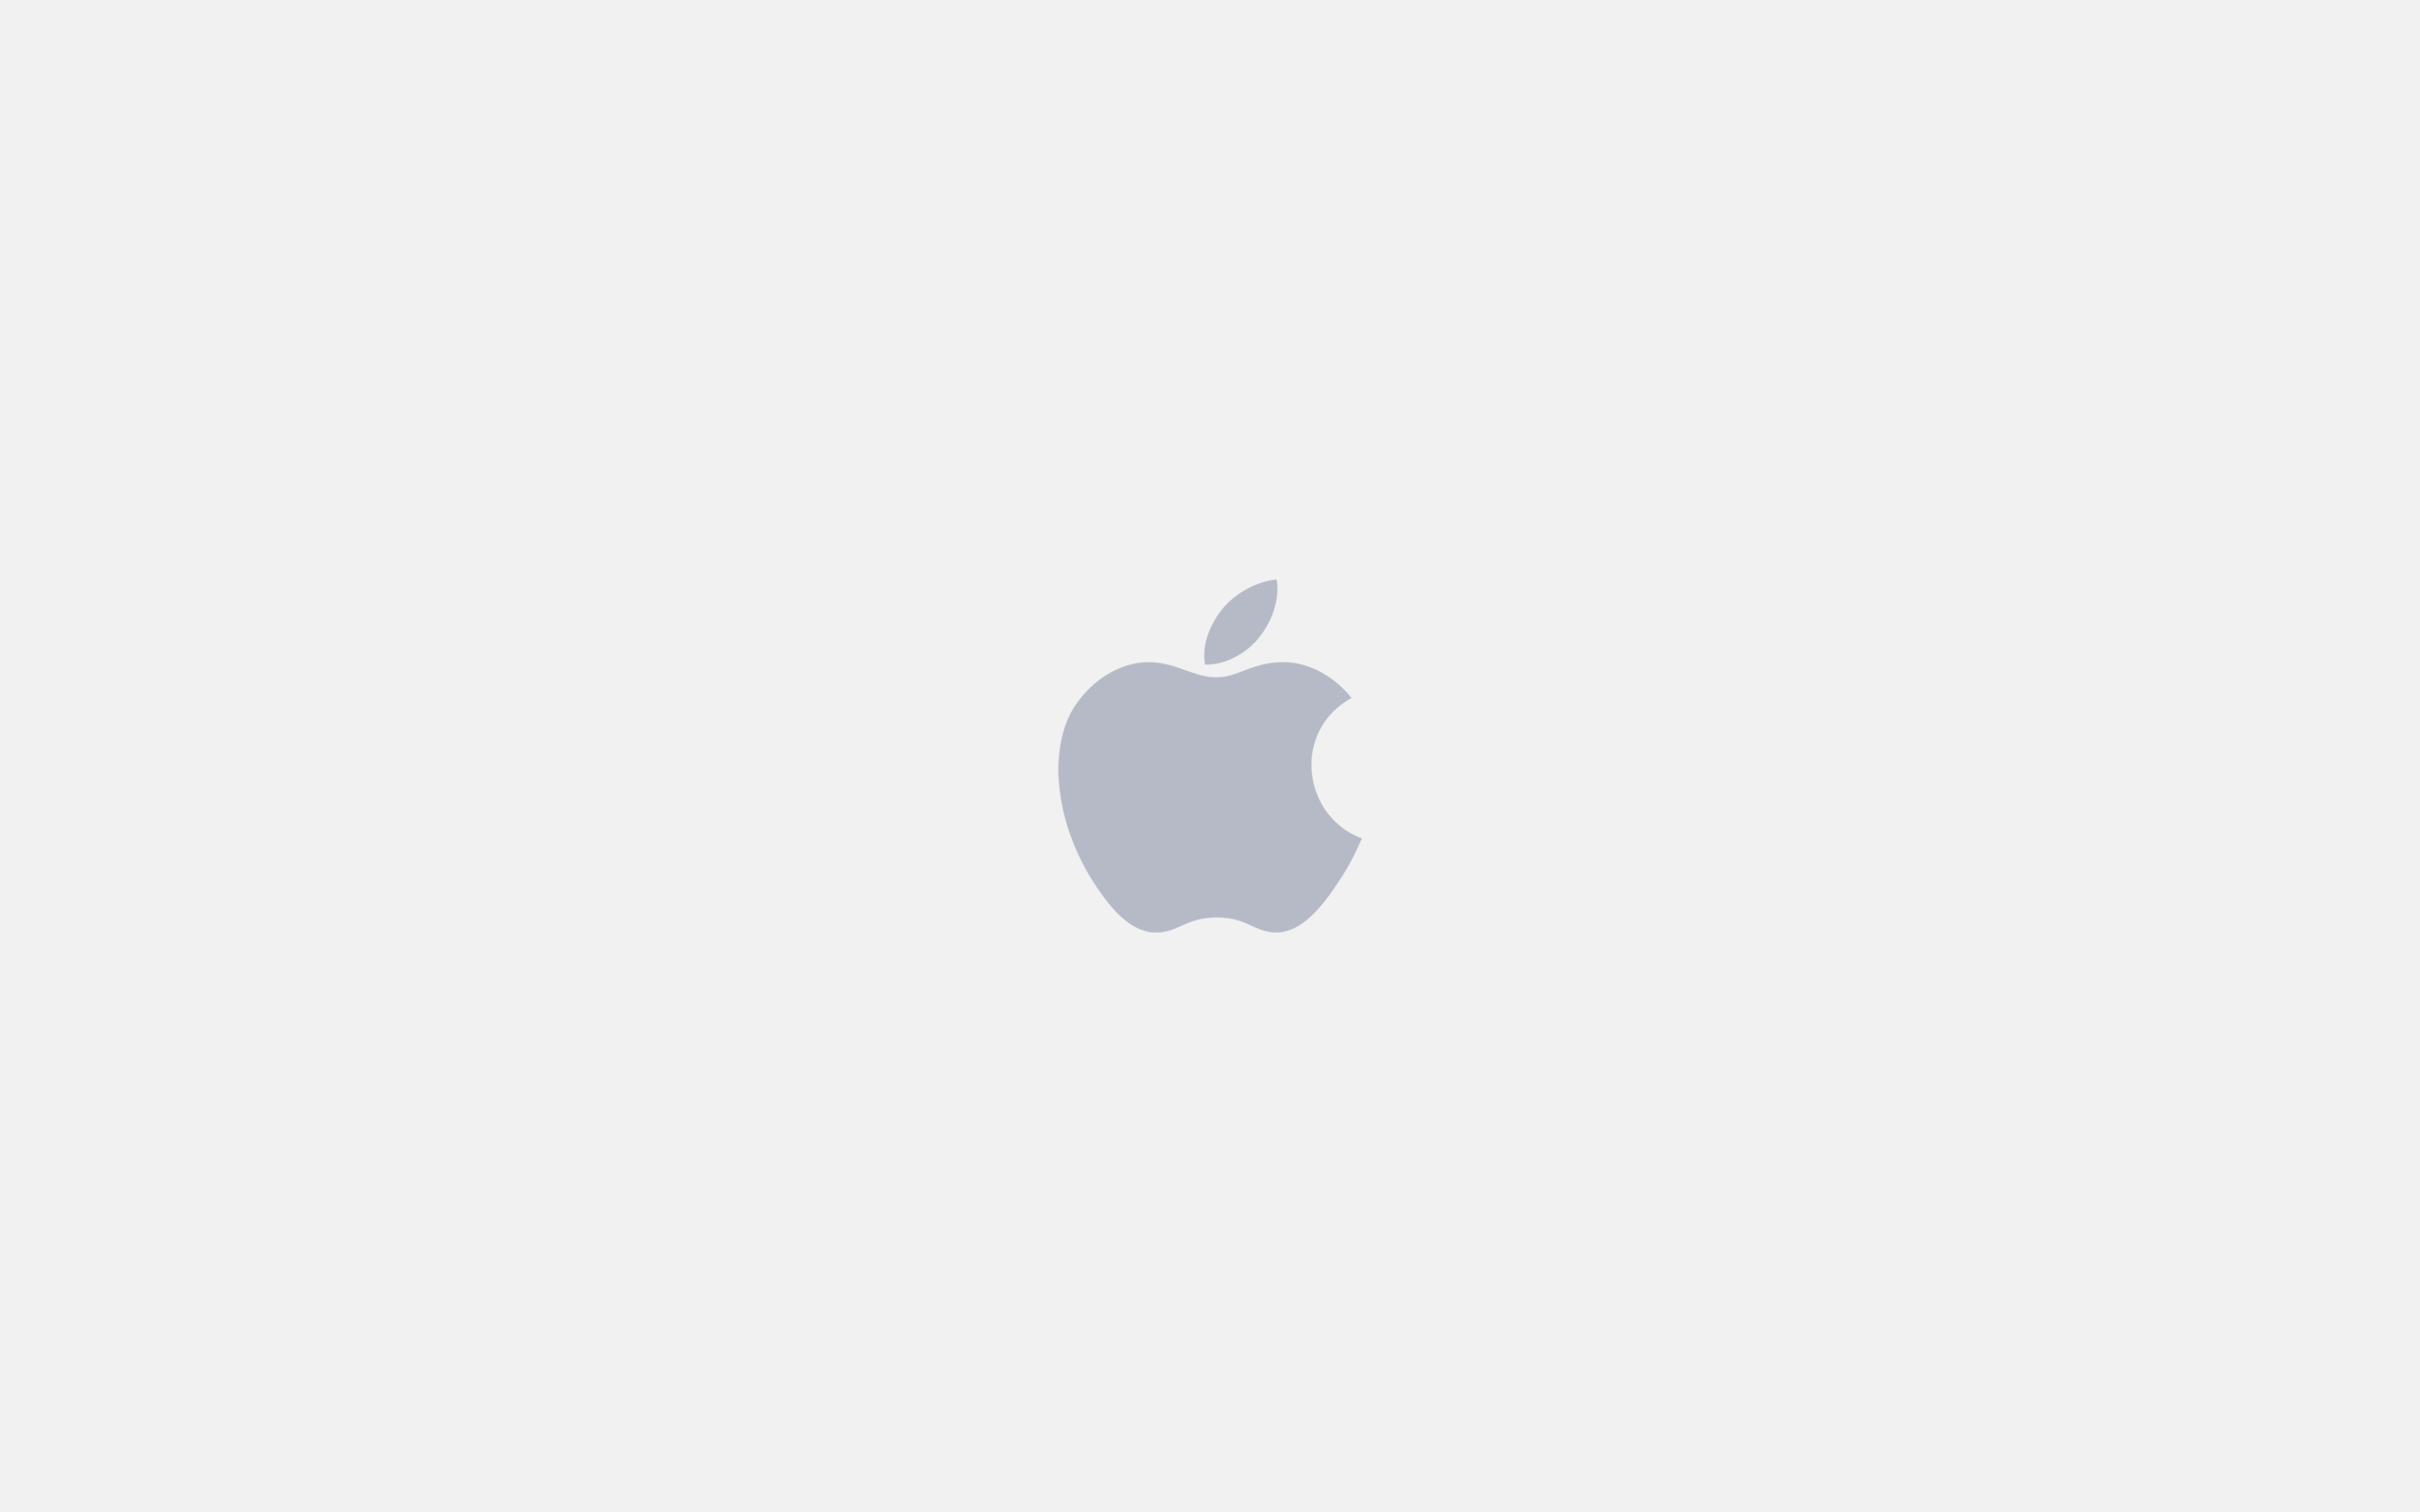 Collection of Apple Logo Desktop Wallpaper on HDWallpapers